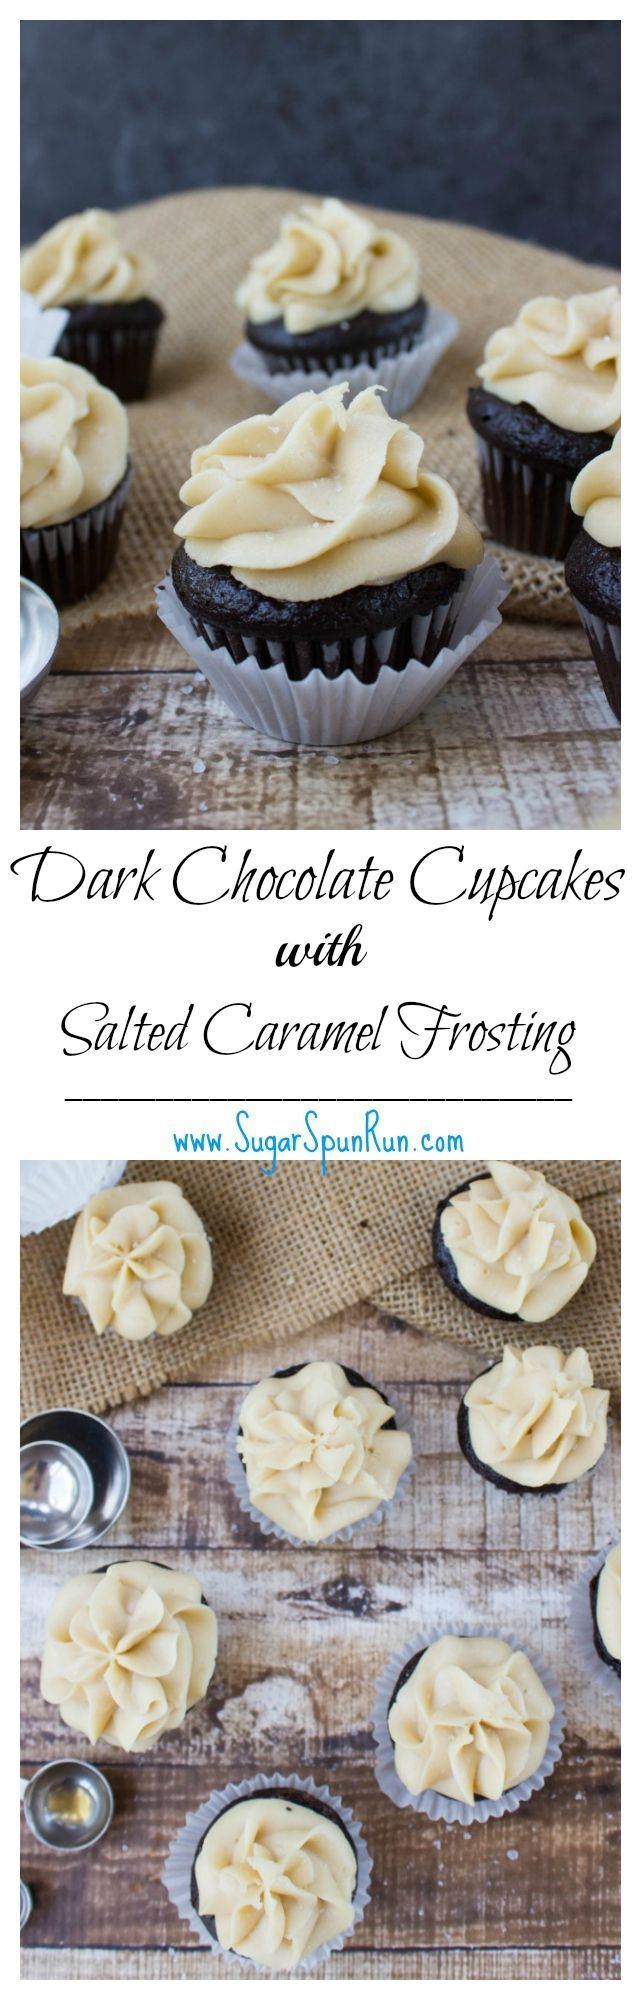 Mini dark chocolate cupcakes with salted caramel frosting  SugarSpunRun